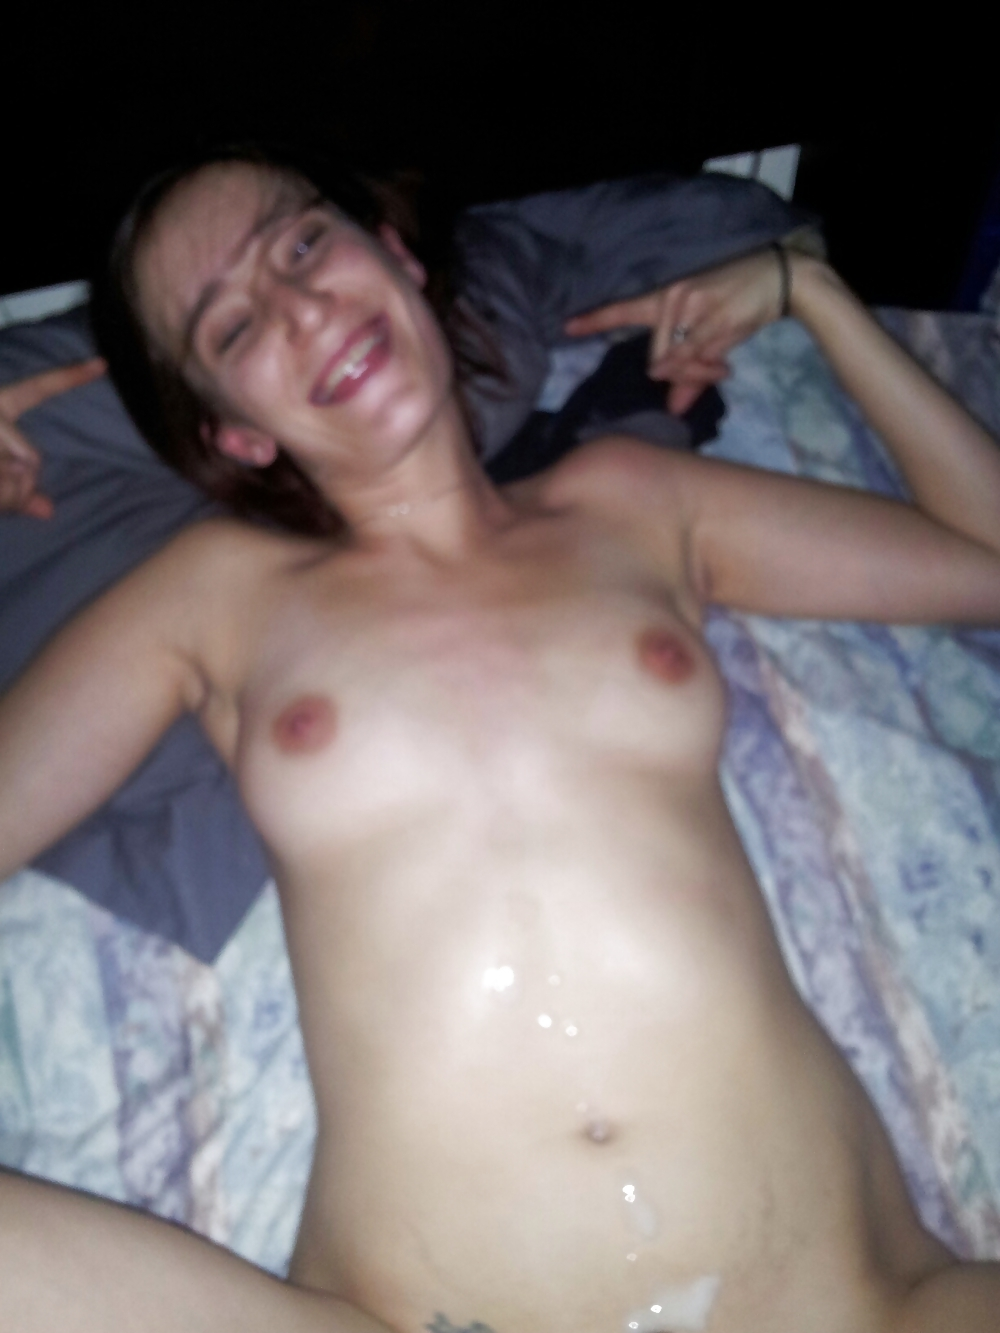 casual encounters craigslist girls looking to fuck